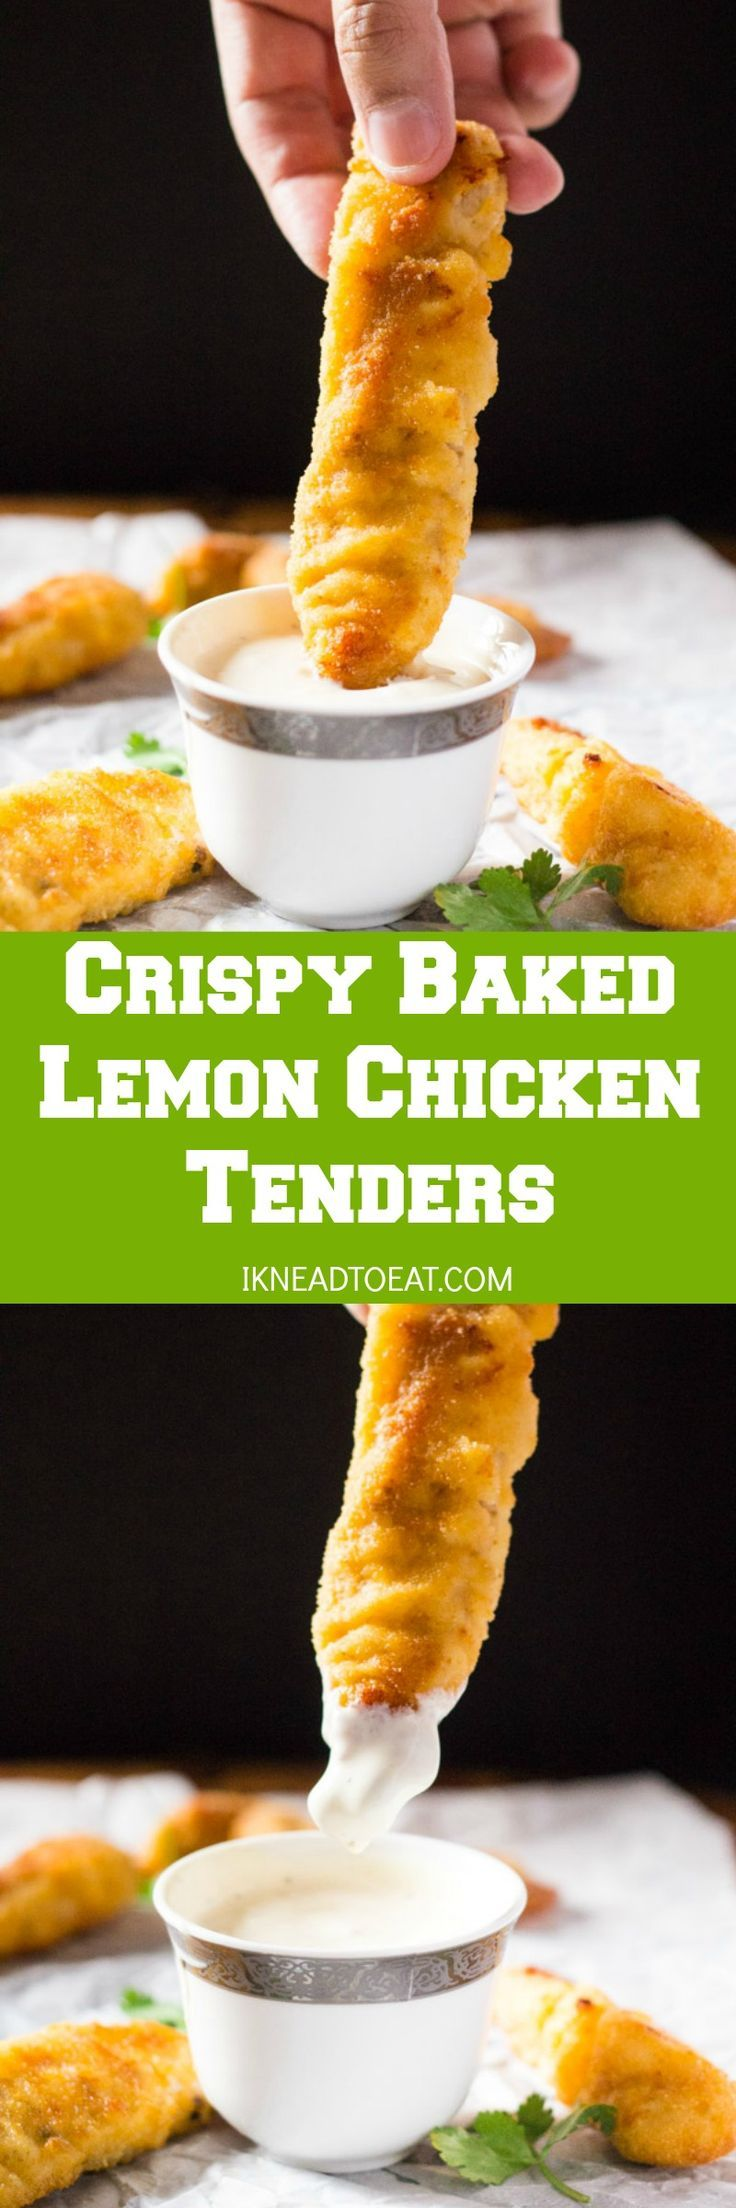 These Crispy Baked Lemon Chicken Tenders are truly crispy and so easy to make. These tenders are marinated in lemon and oregano, and then breaded and baked. Delicious and perfect for both kids and adults!